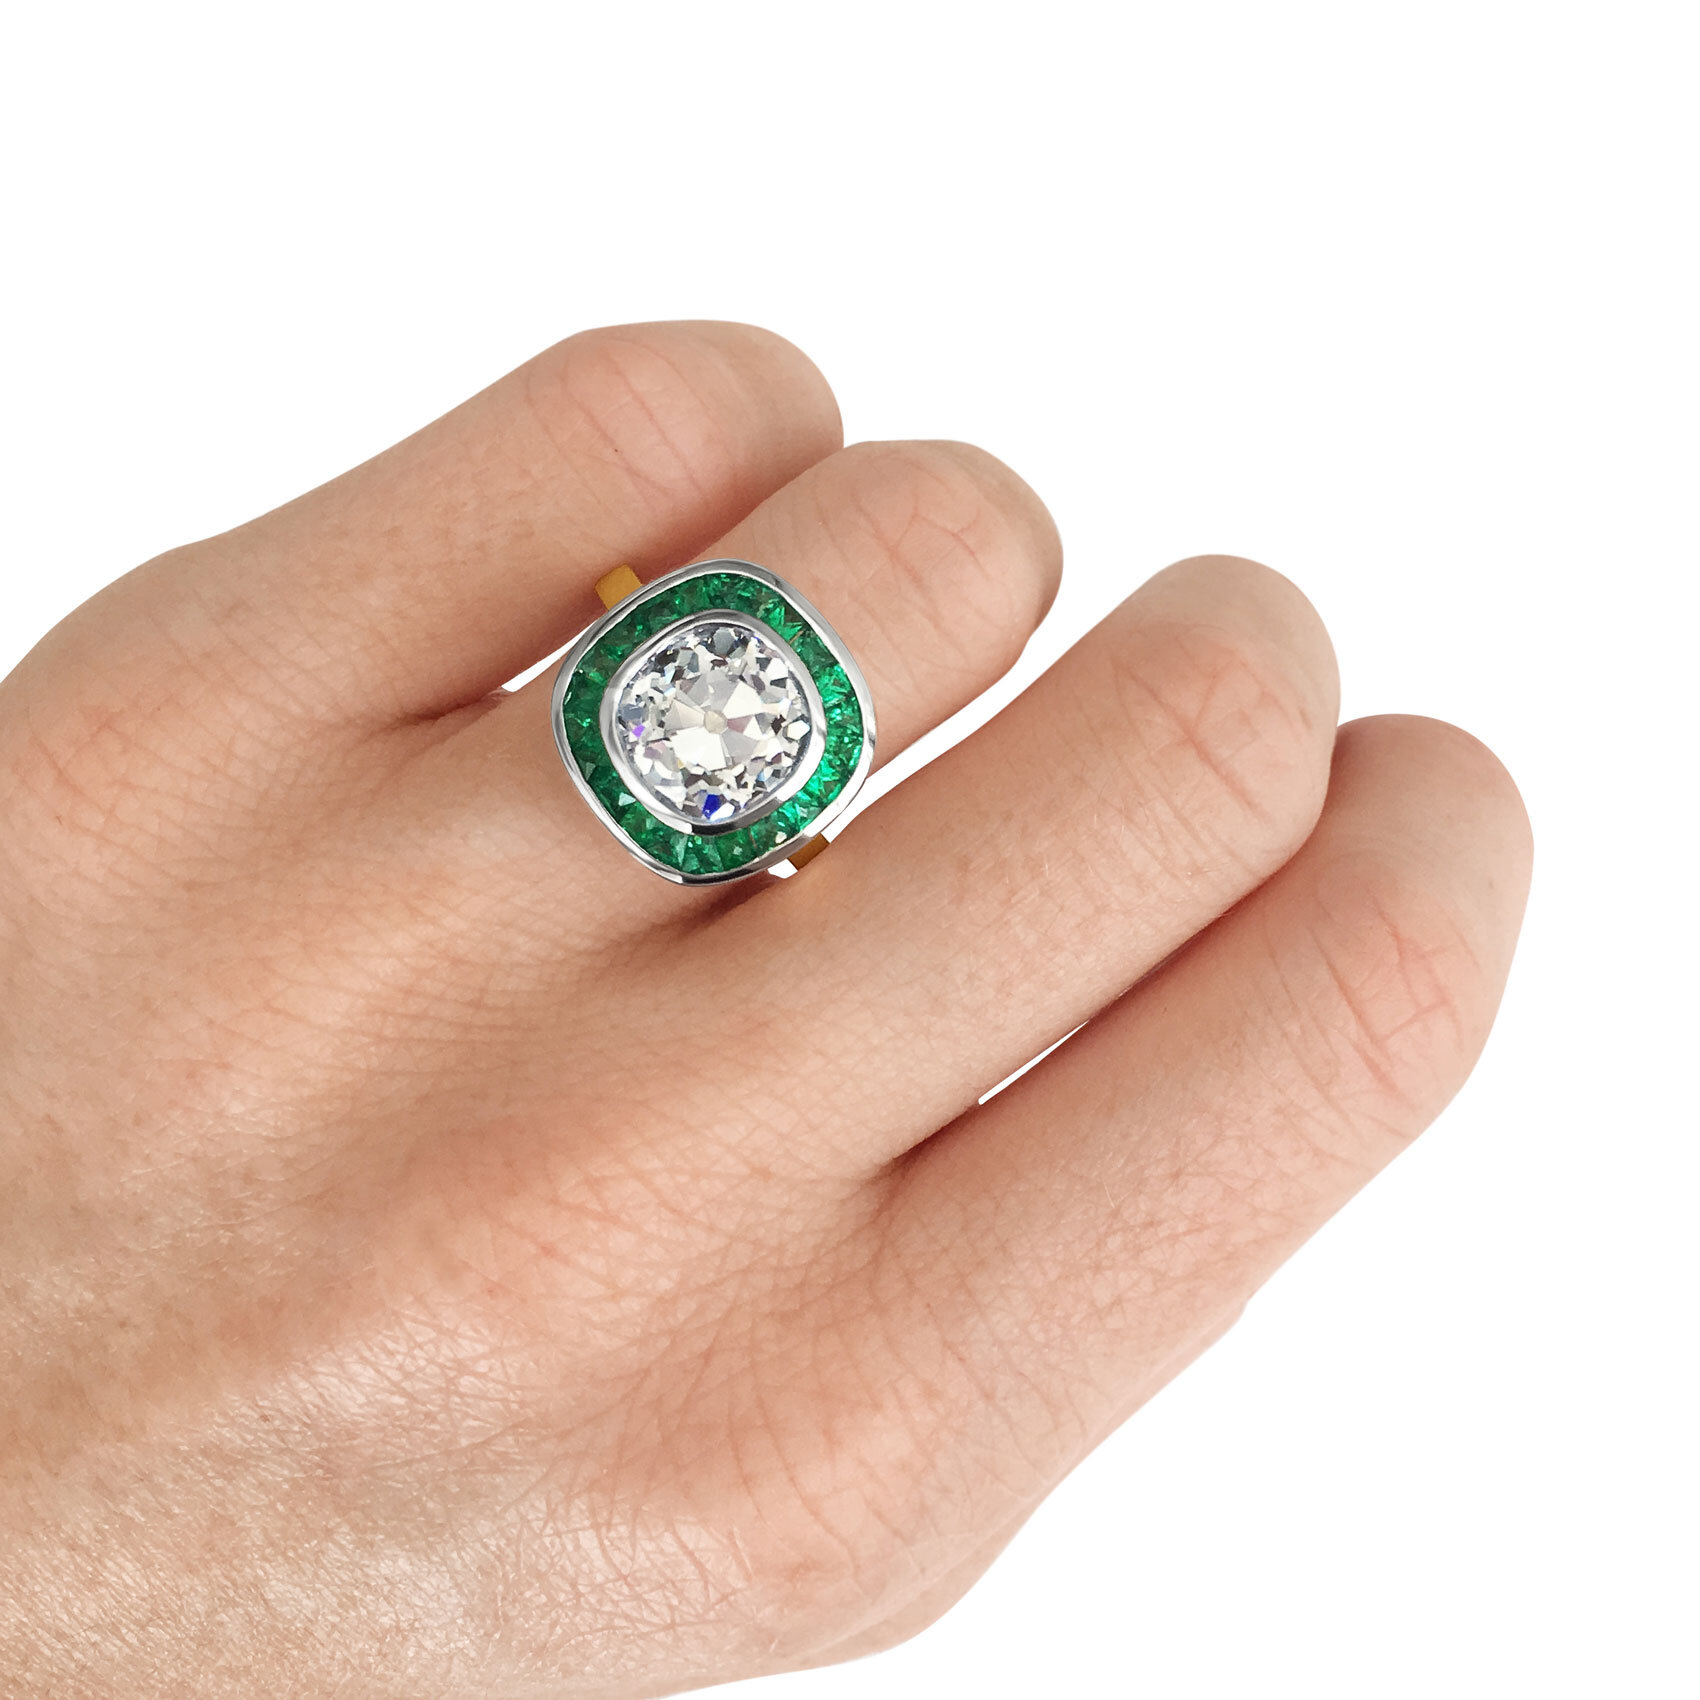 Old cut cushion-cut diamond target ring with emerald halo mounted in 18ct yellow gold.